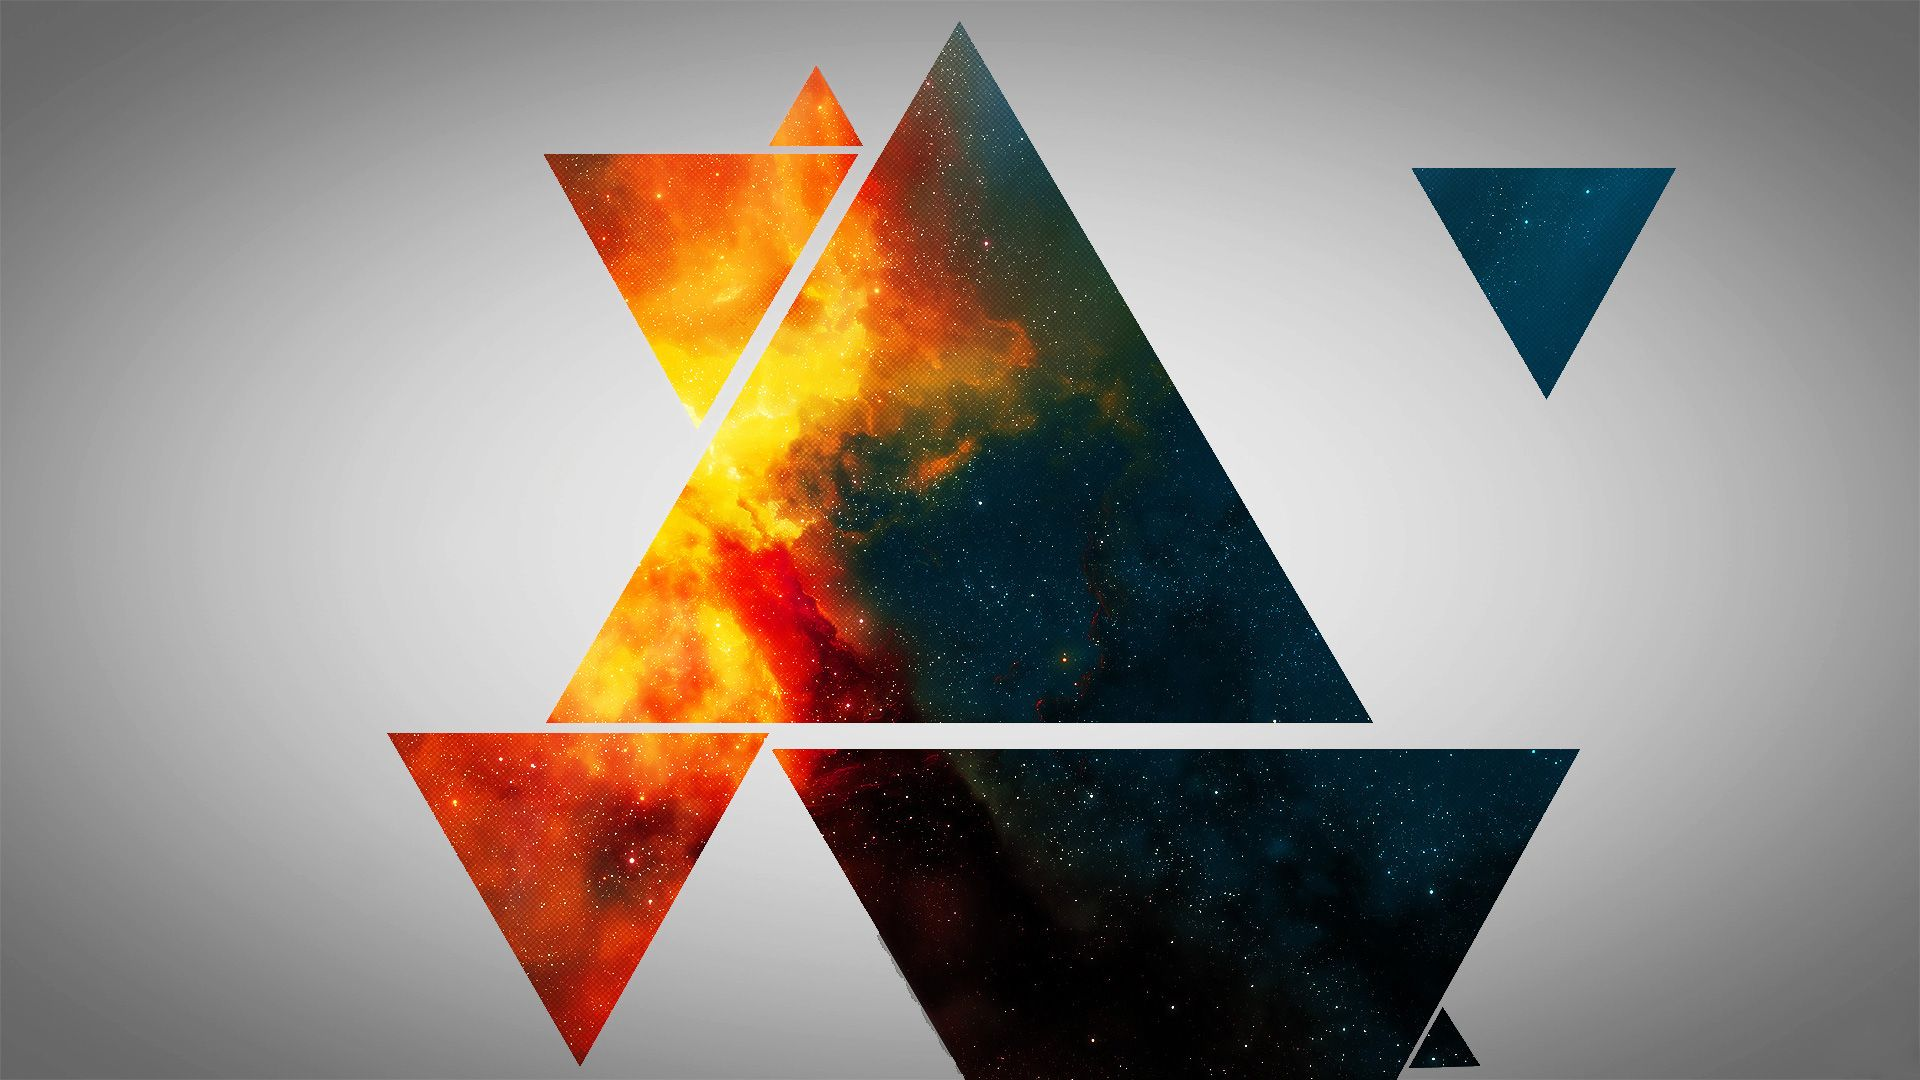 Abstract Wallpaper Triangles